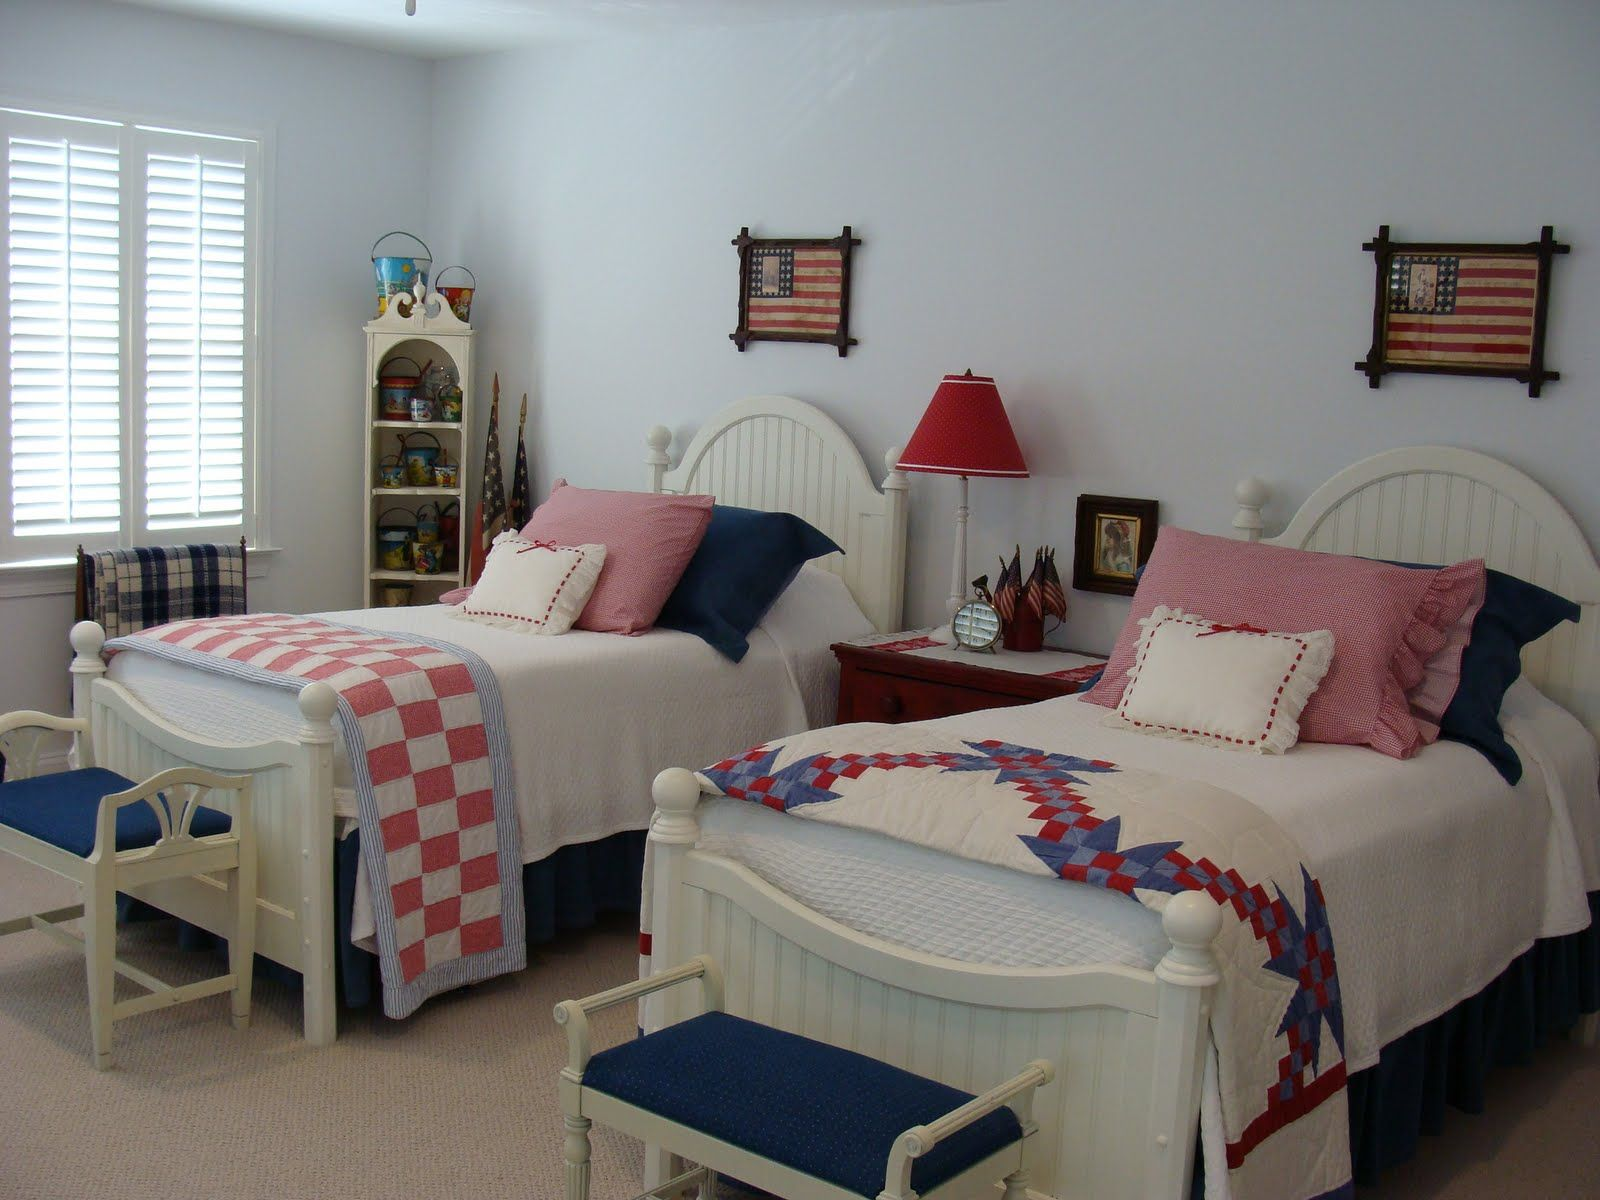 Red White And Blue Bedroom | This Is My Favorite Bedroom. Sheu0027s Done It In  Red, White And Blue With .